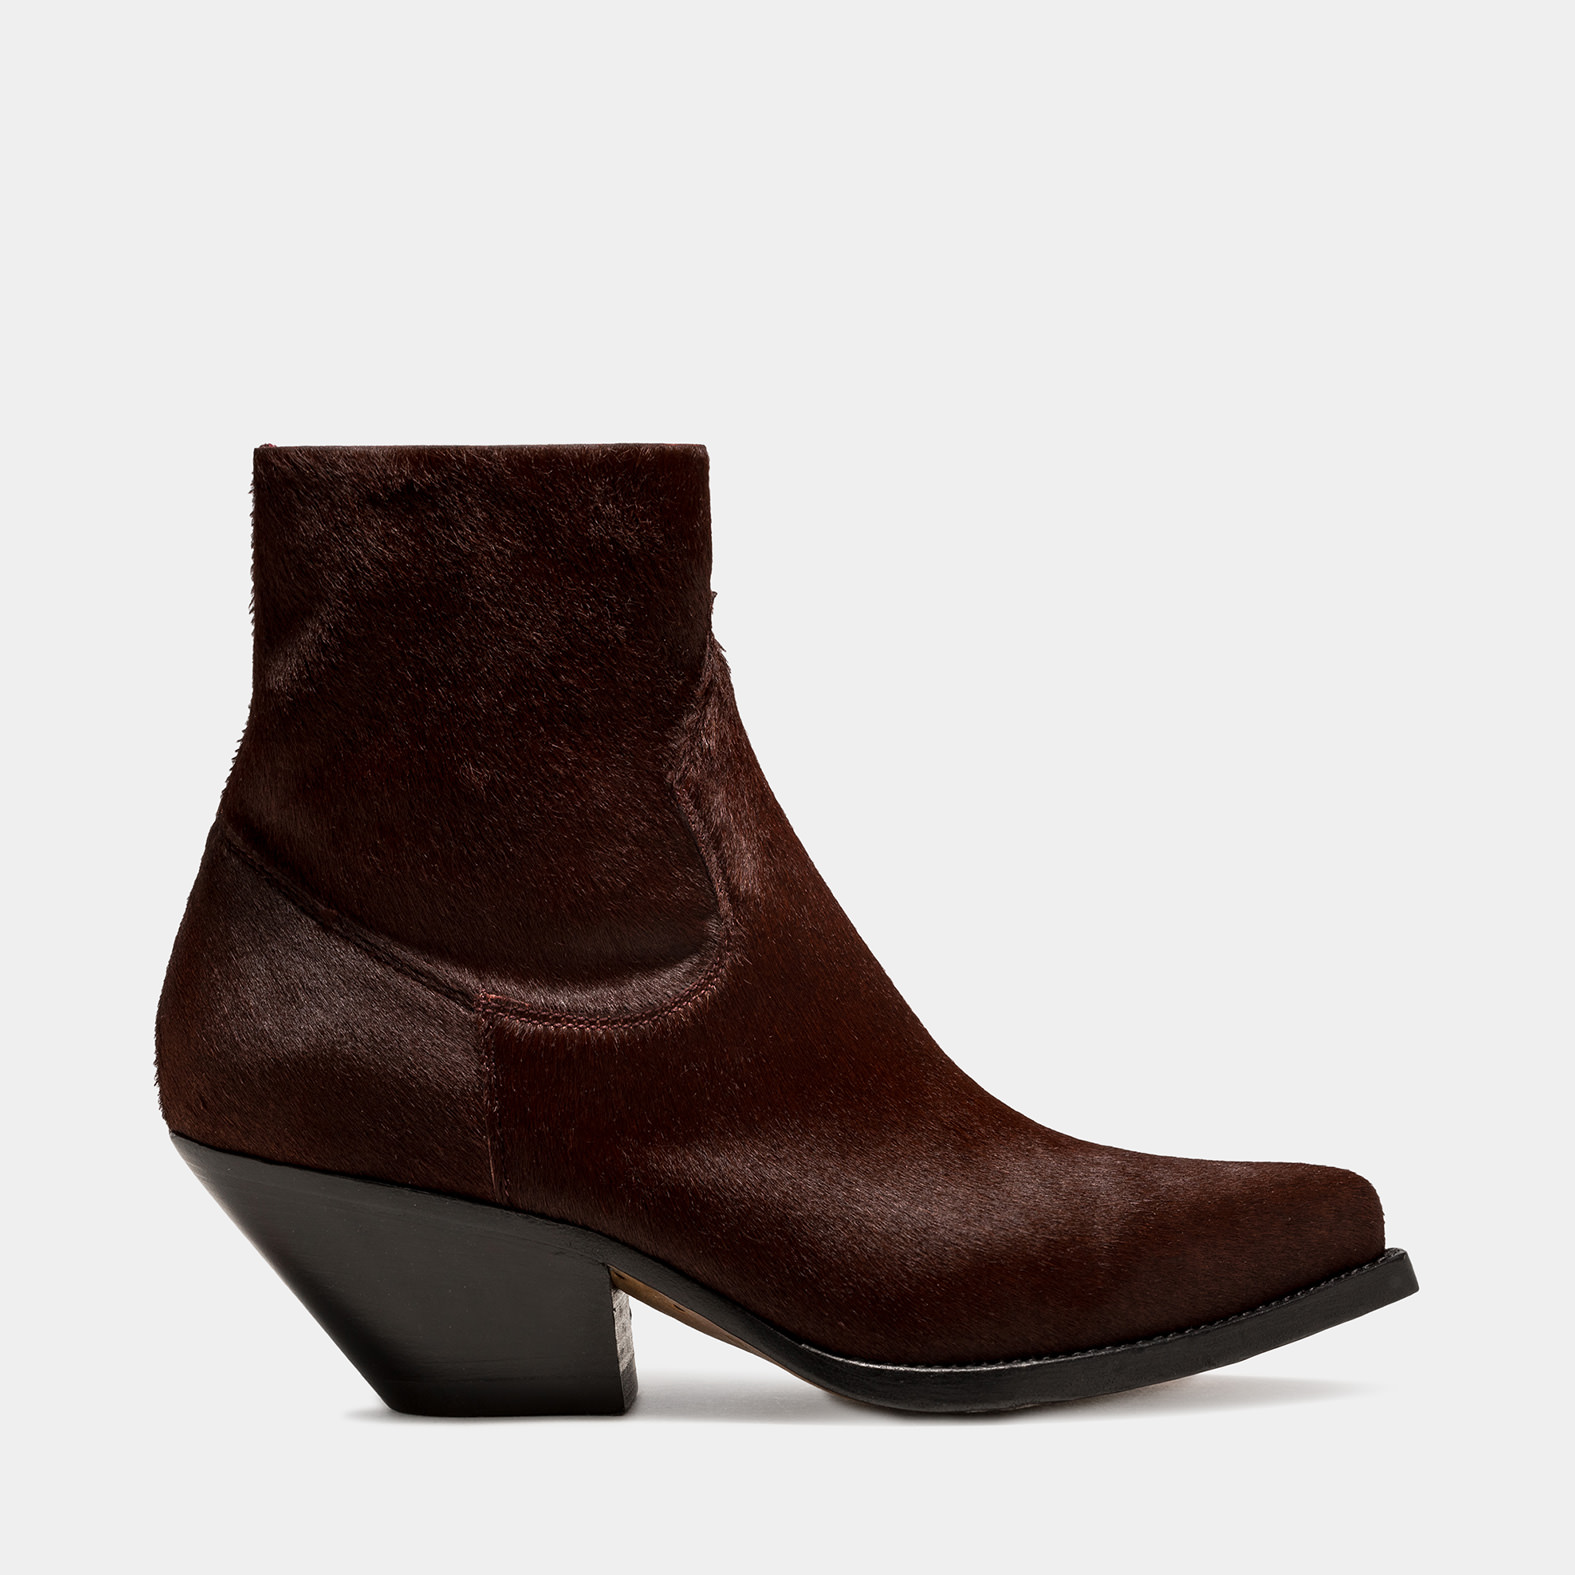 BUTTERO: ELISE TEXANO LOW BOOT IN BURGUNDY PONY SKIN